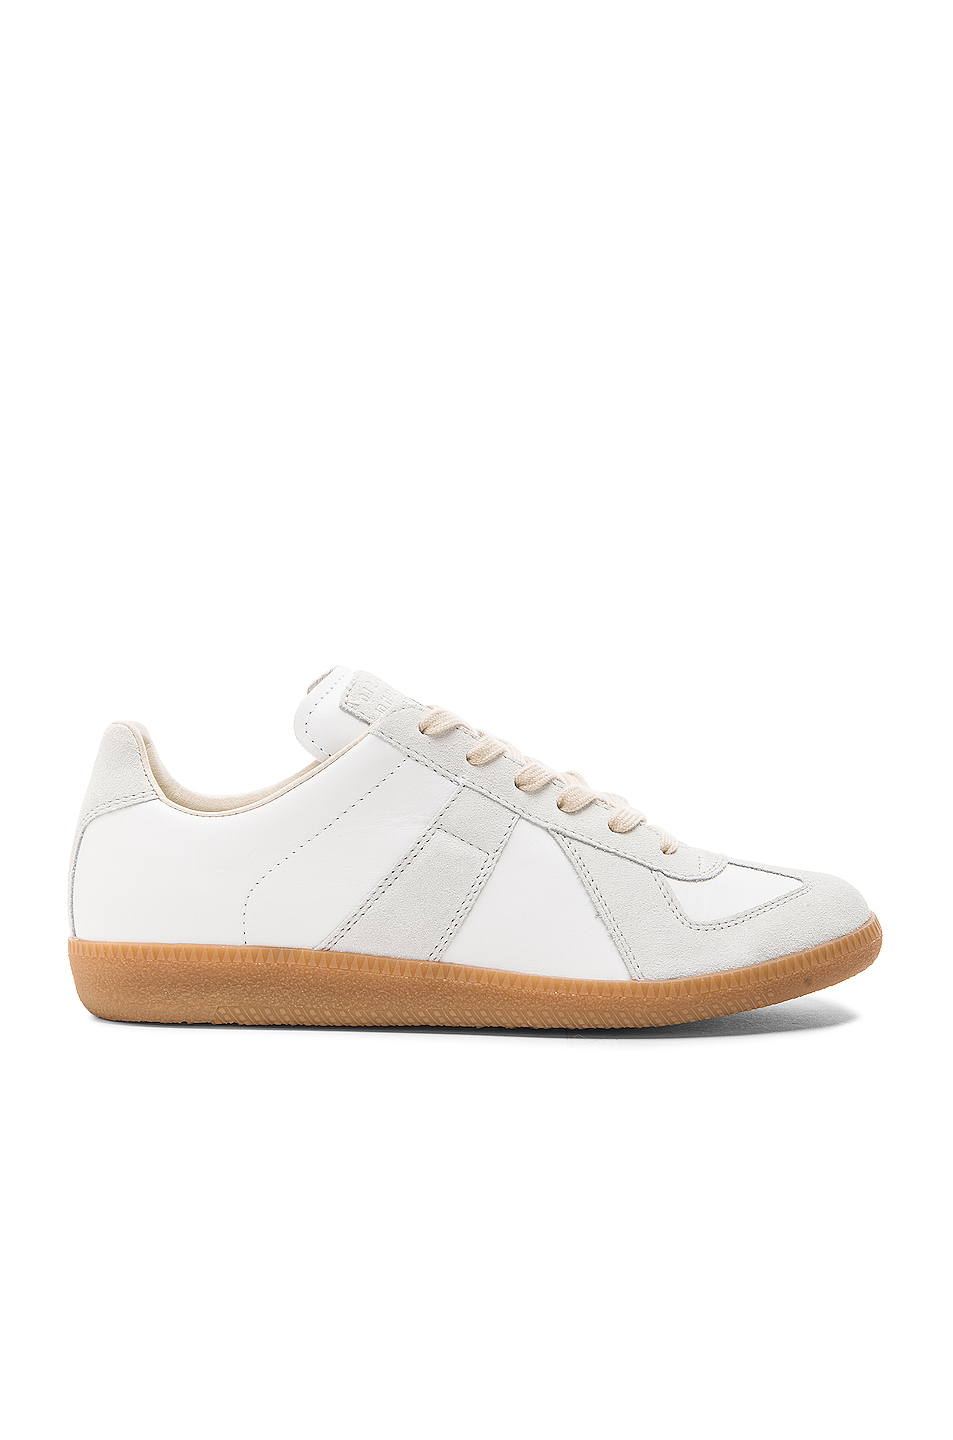 Maison Margiela Replica Calf & Lambskin Leather Sneakers in White